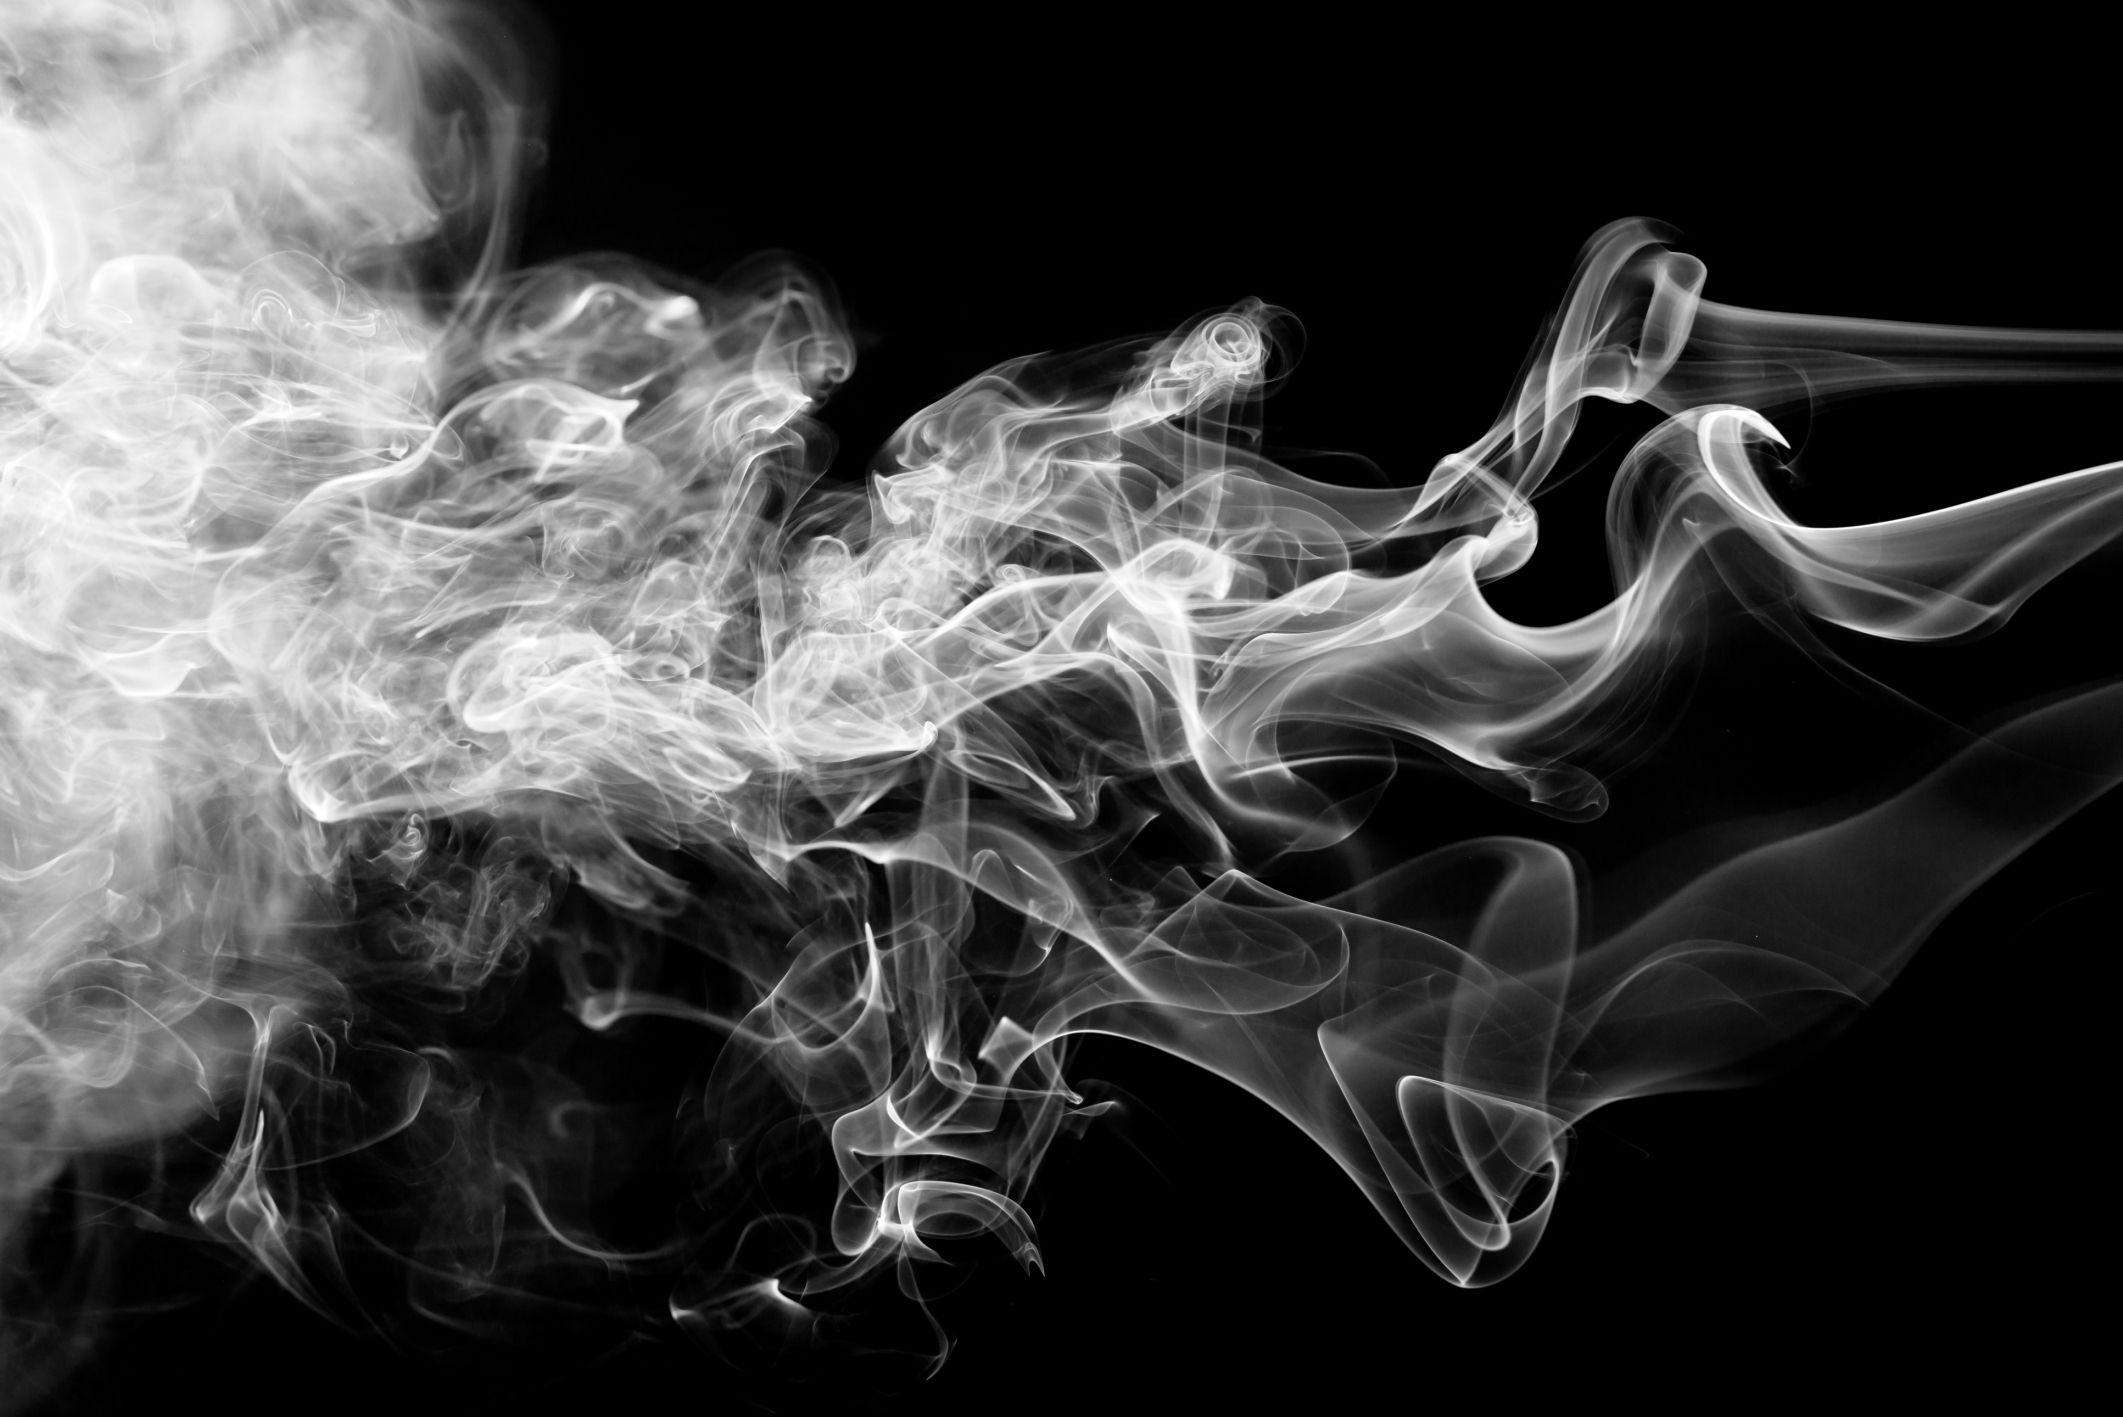 Try And Live A Life That Is Worth Being Proud Of If You Don T I Hope You Find The Strength To Start Over Again Smoke Background Smoke Art Smoke Wallpaper